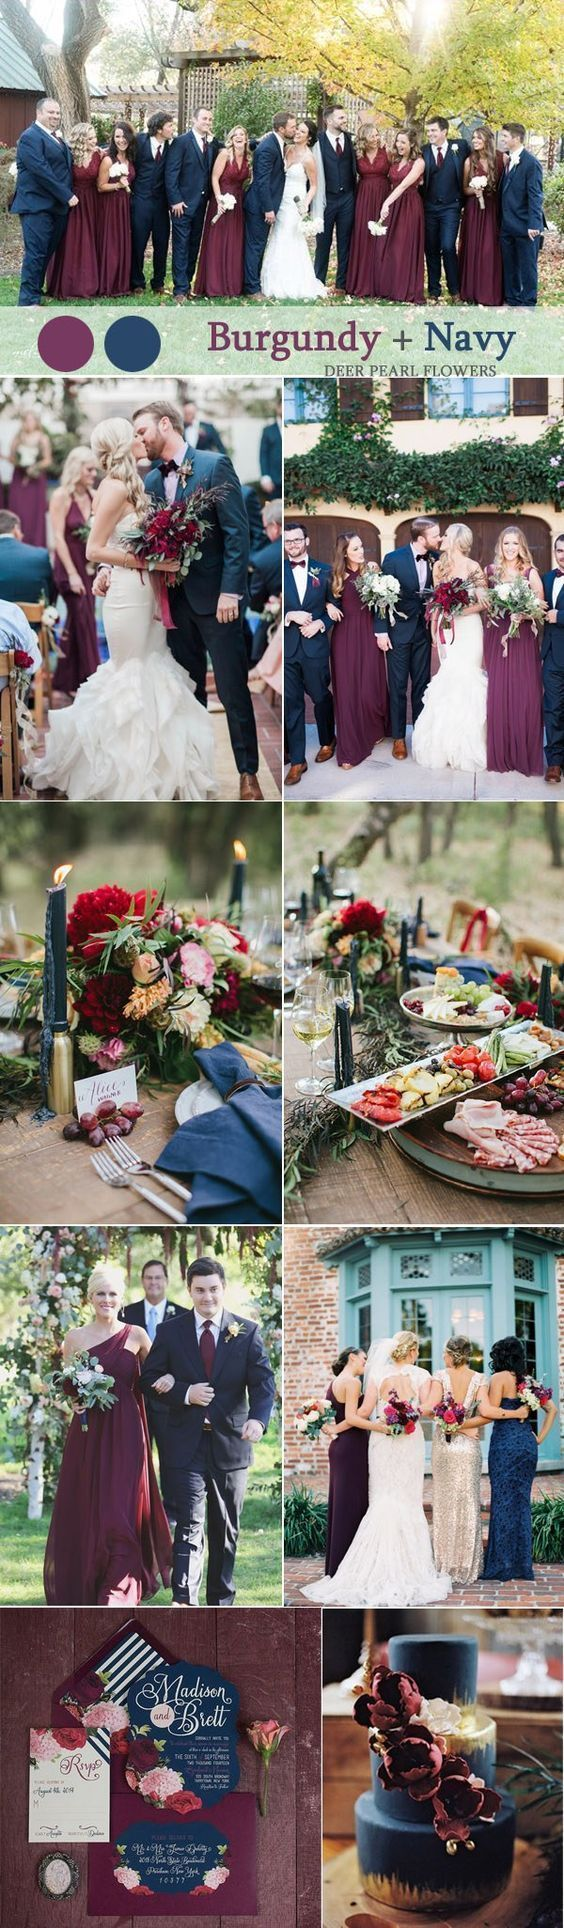 Burgundy and gold fall wedding color ideas / http://www.deerpearlflowers.com/burgundy-and-navy-wedding-color-ideas/ #weddingplanningdiy